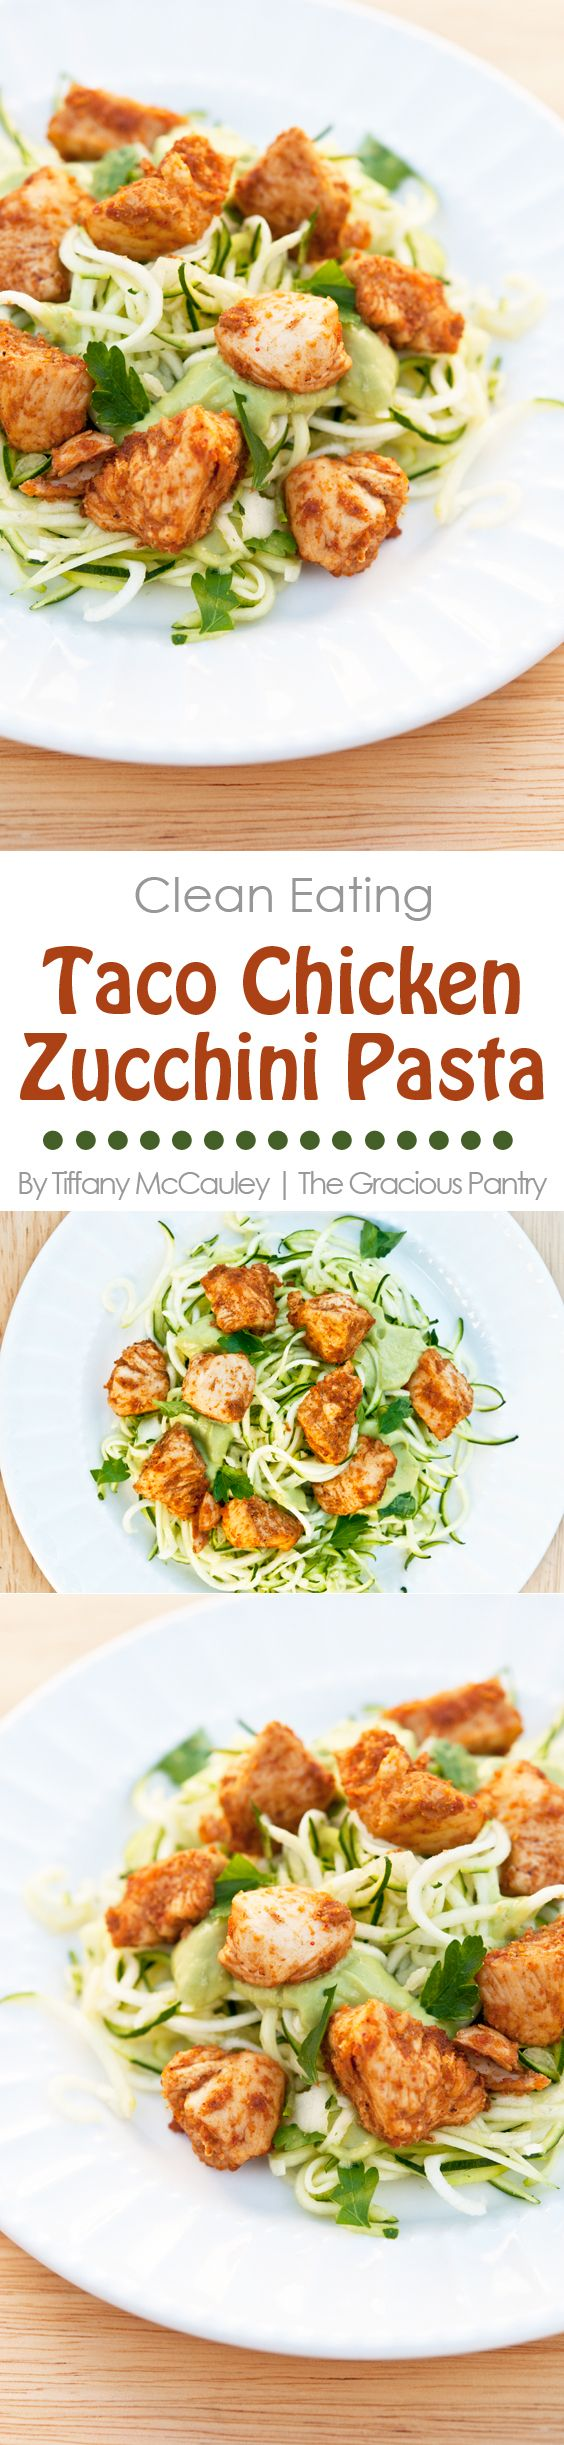 126 best clean eating no added sugar recipes images on pinterest clean eating recipes zoodle recipes zucchini pasta recipes low carb dinner taco forumfinder Image collections